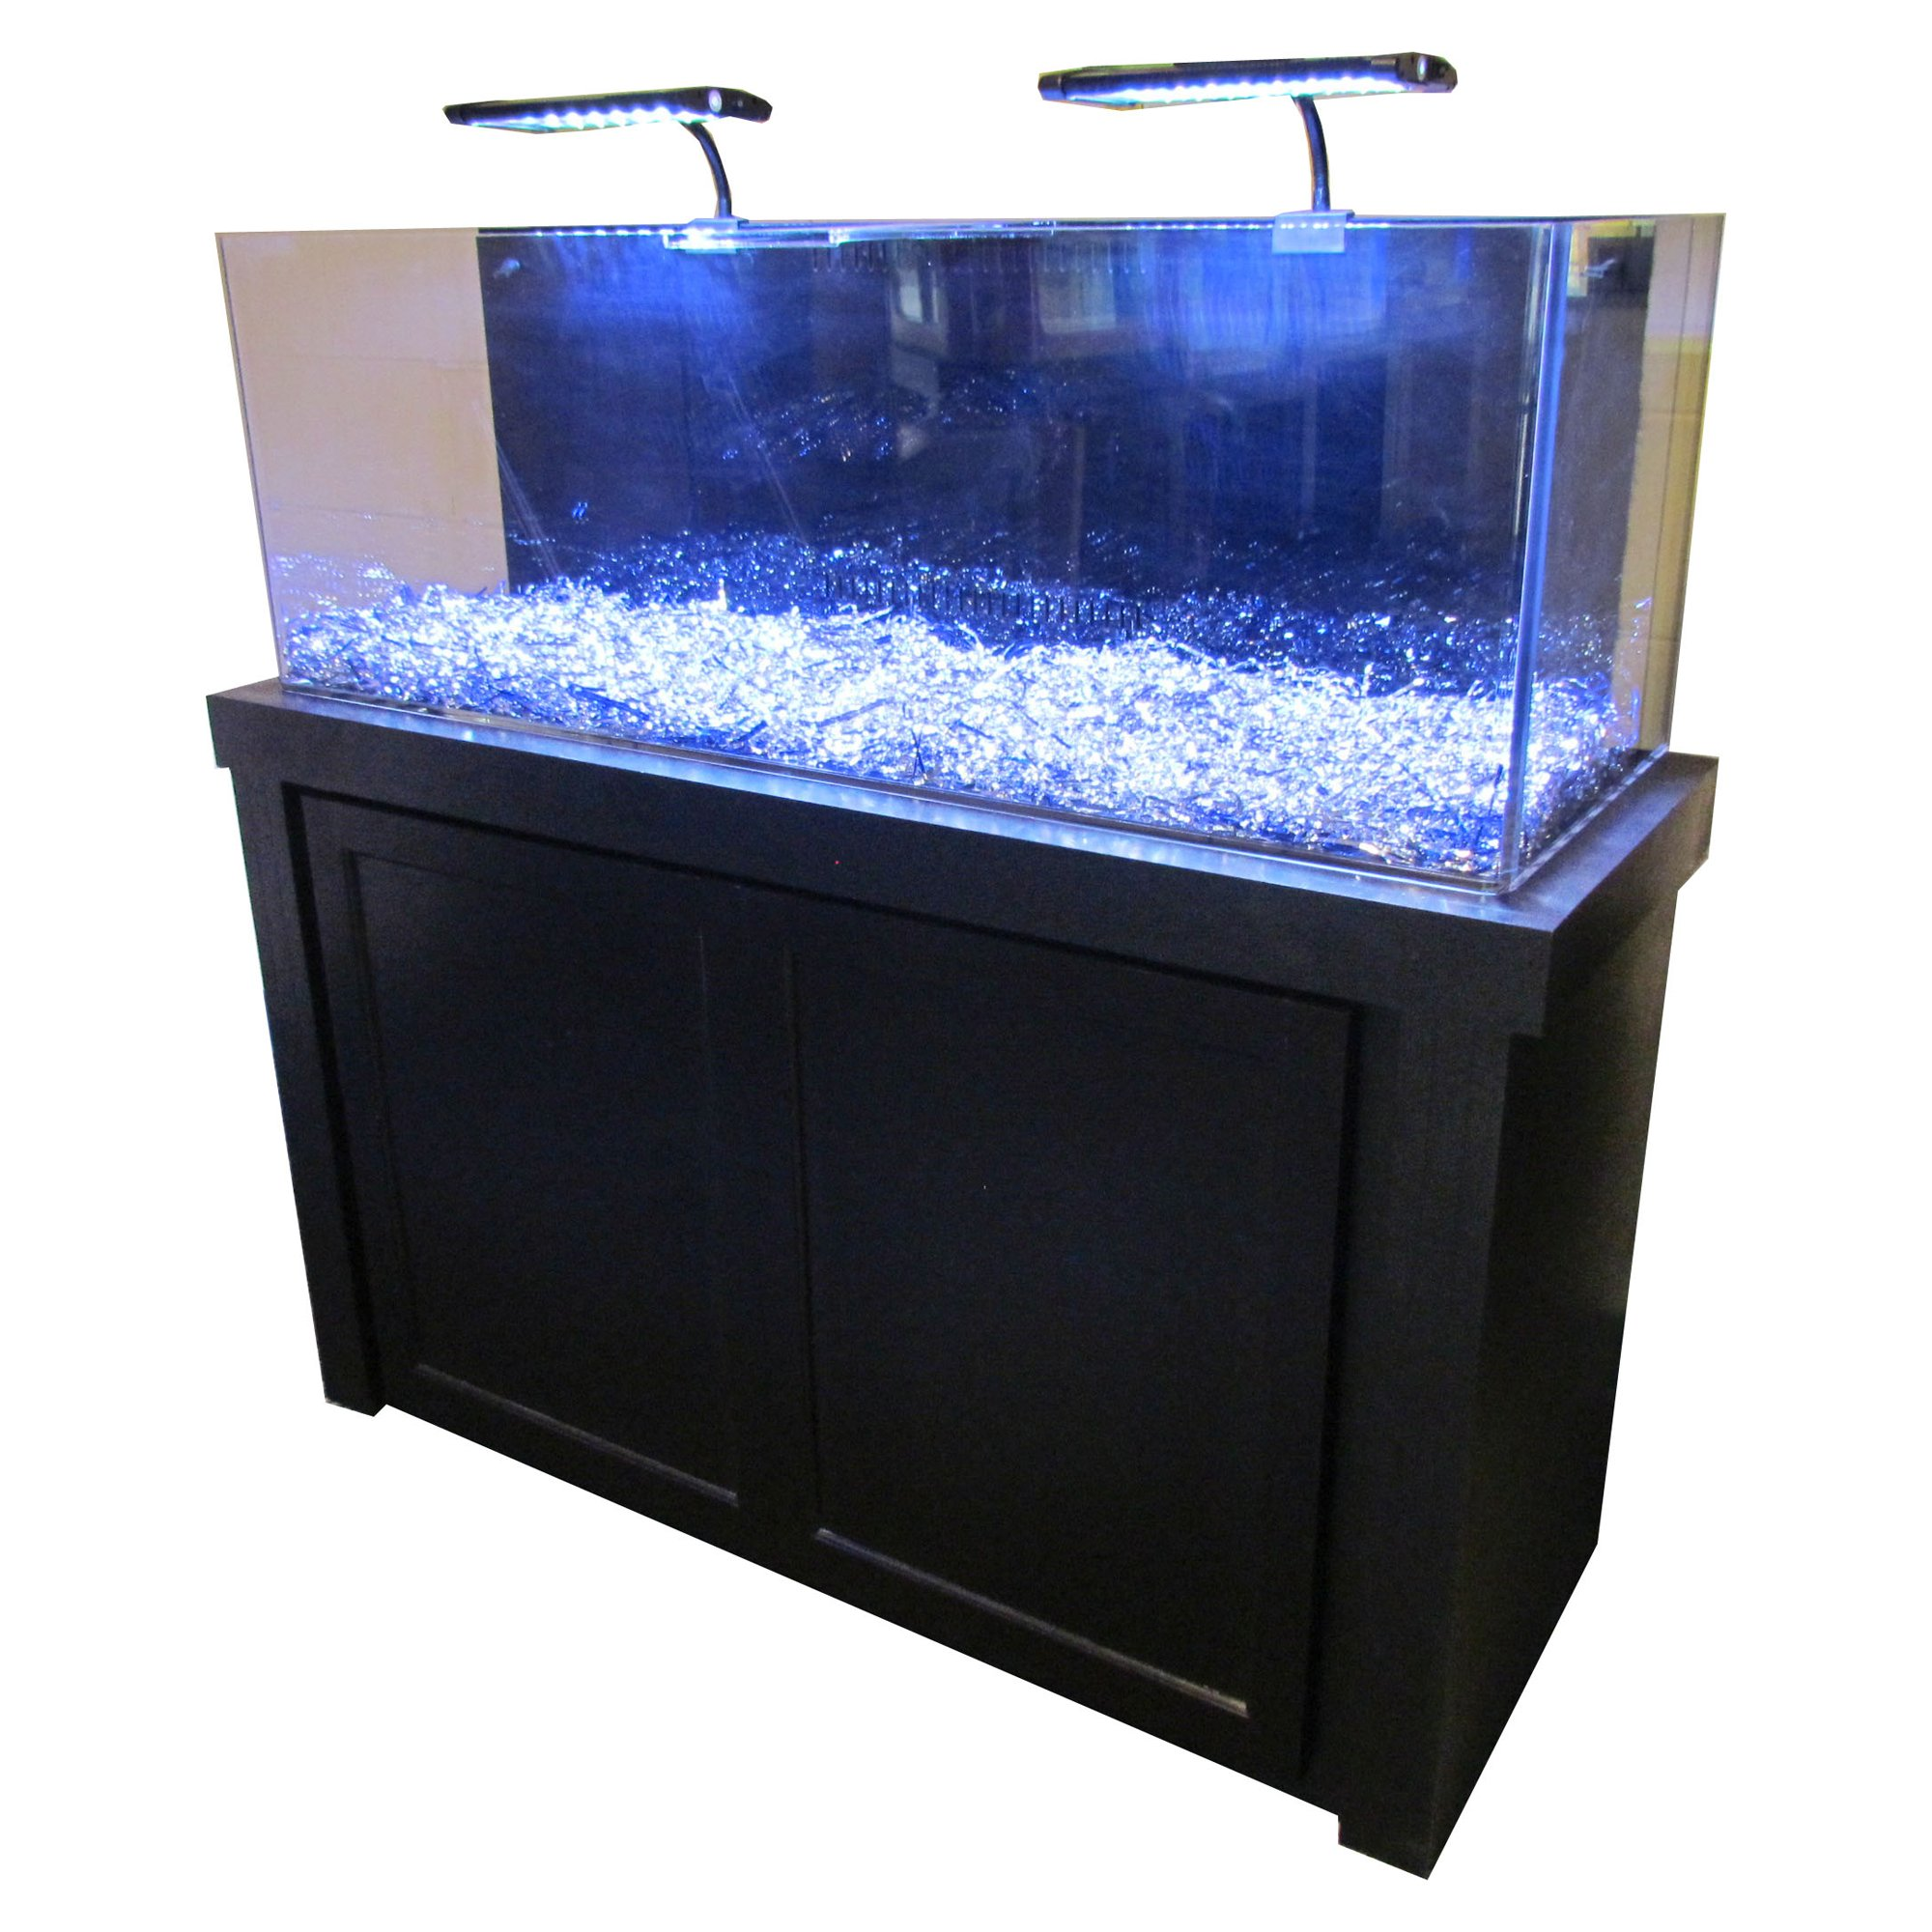 Fish aquarium tanks for sale - 50 Gallon Black Fusion Series Cabinet Tank Combo